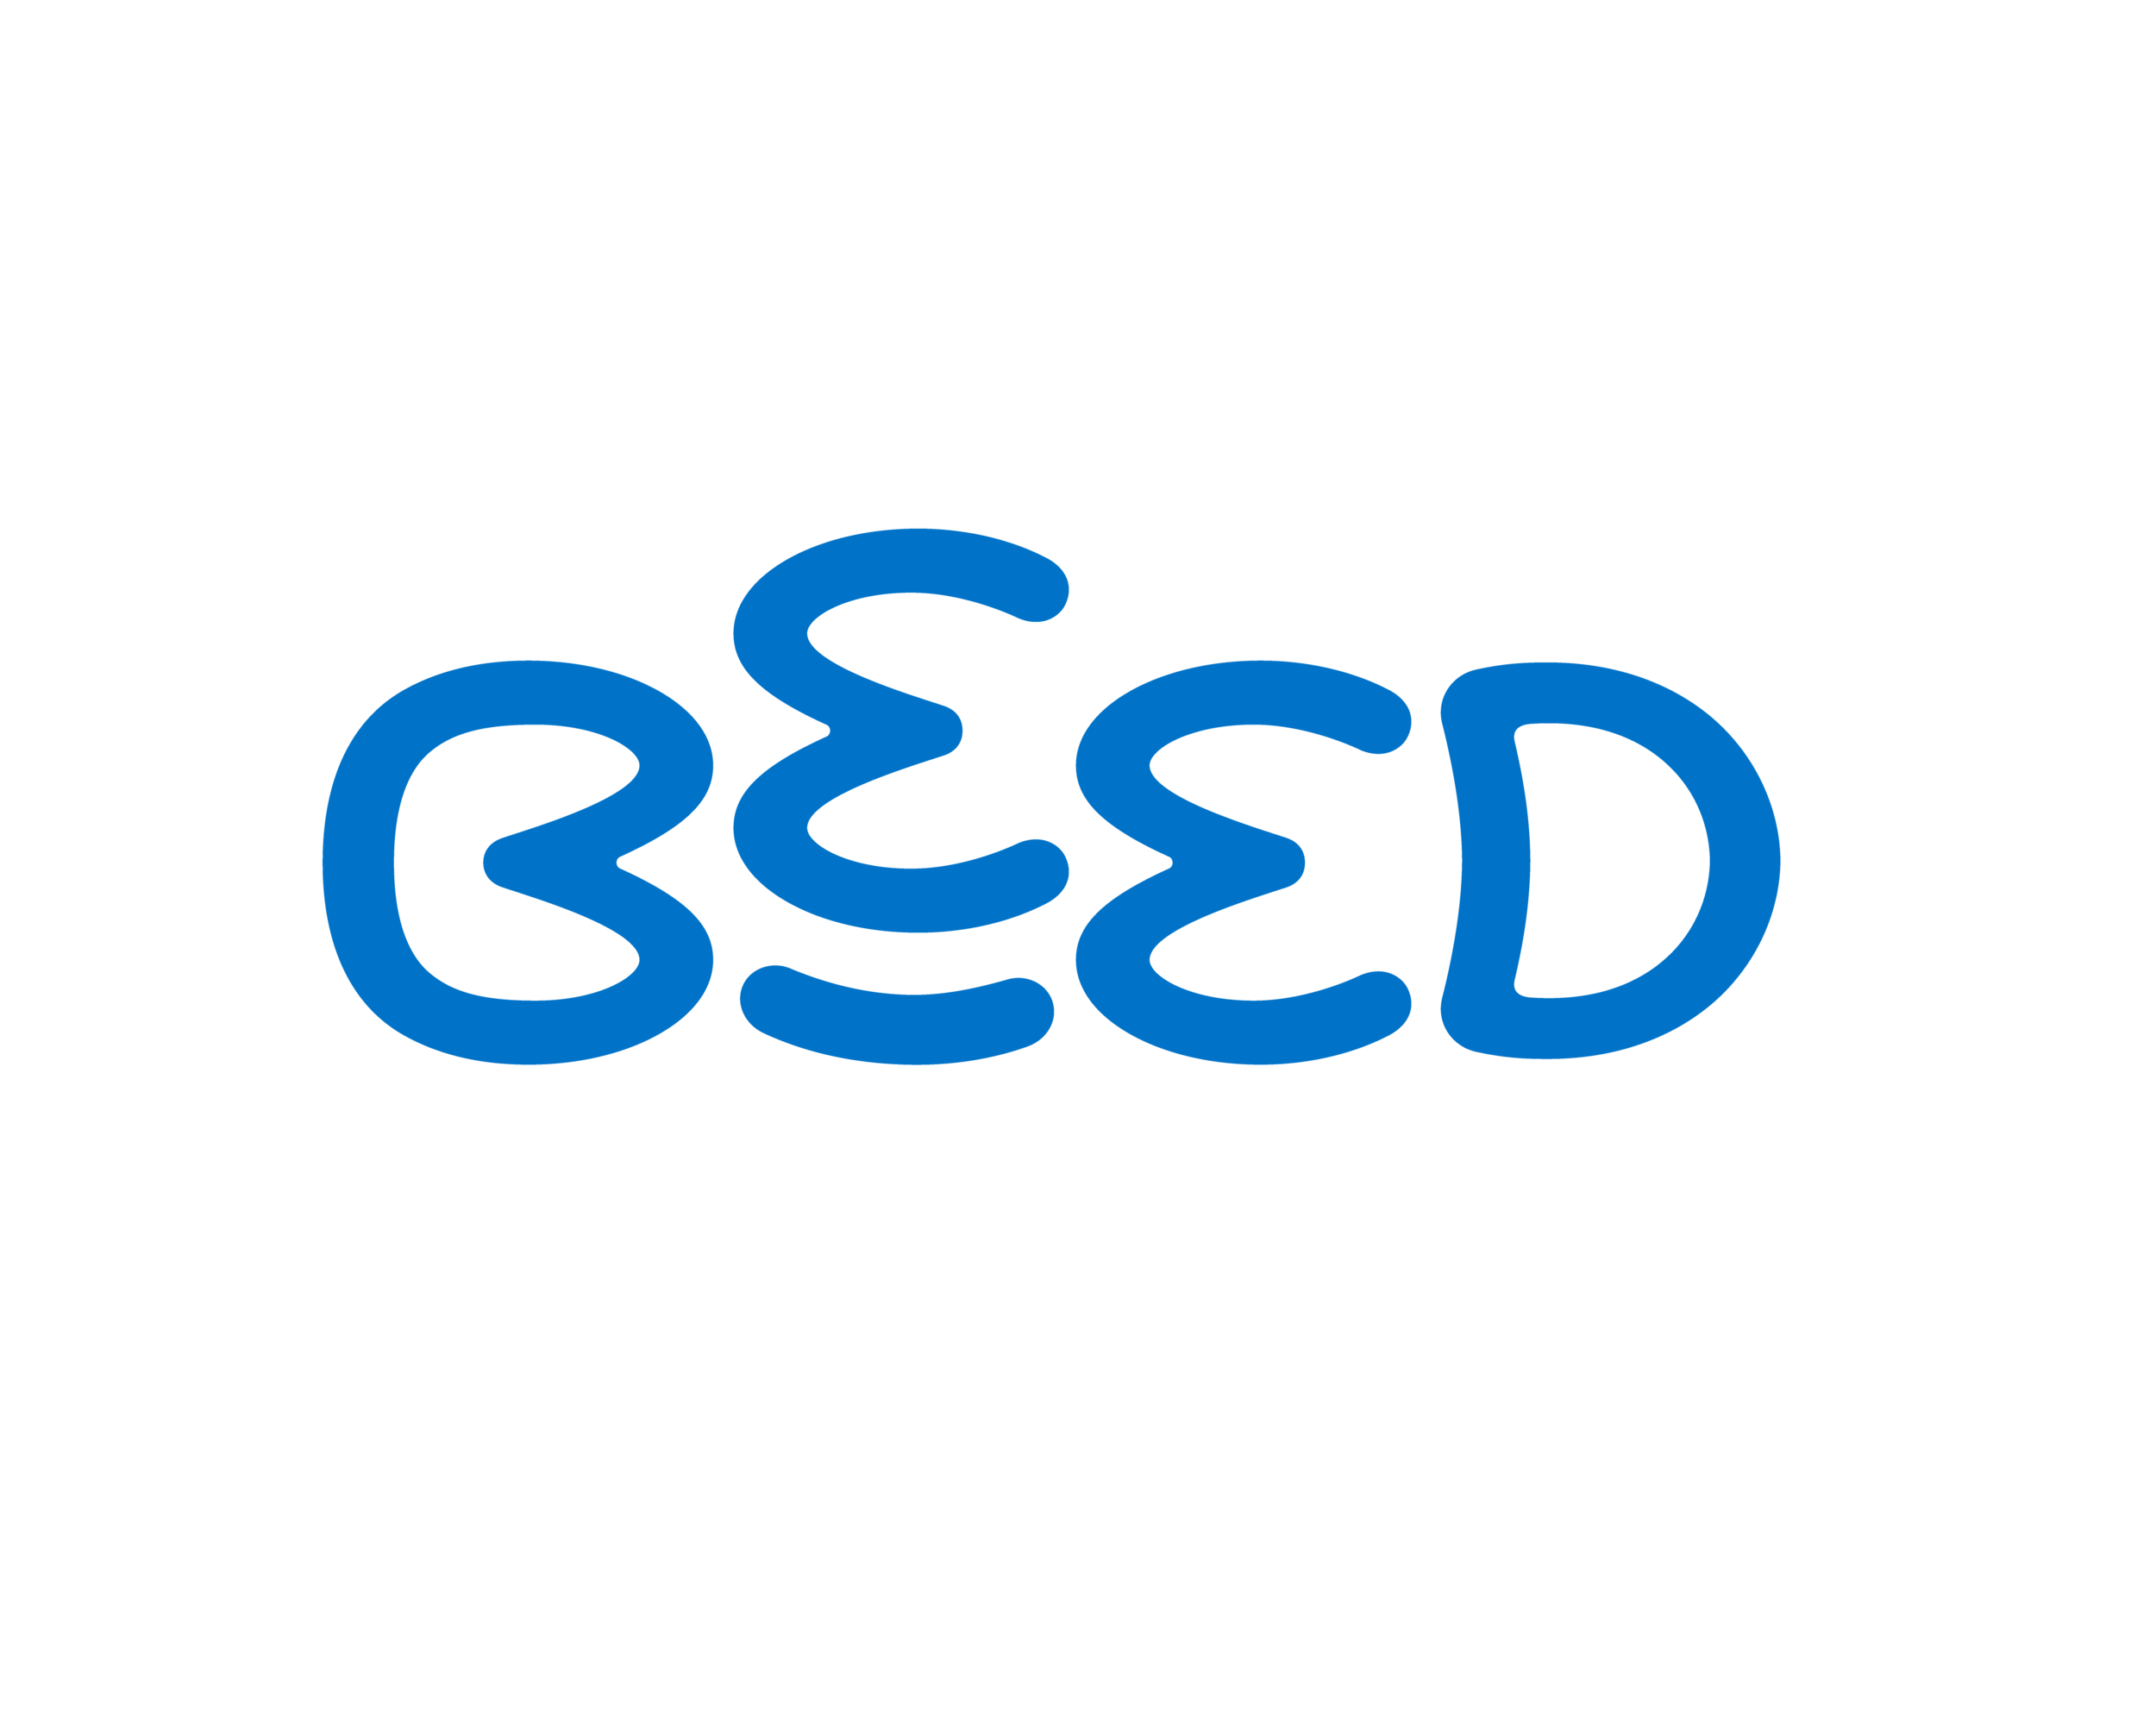 beed-Full-Logo-square.png